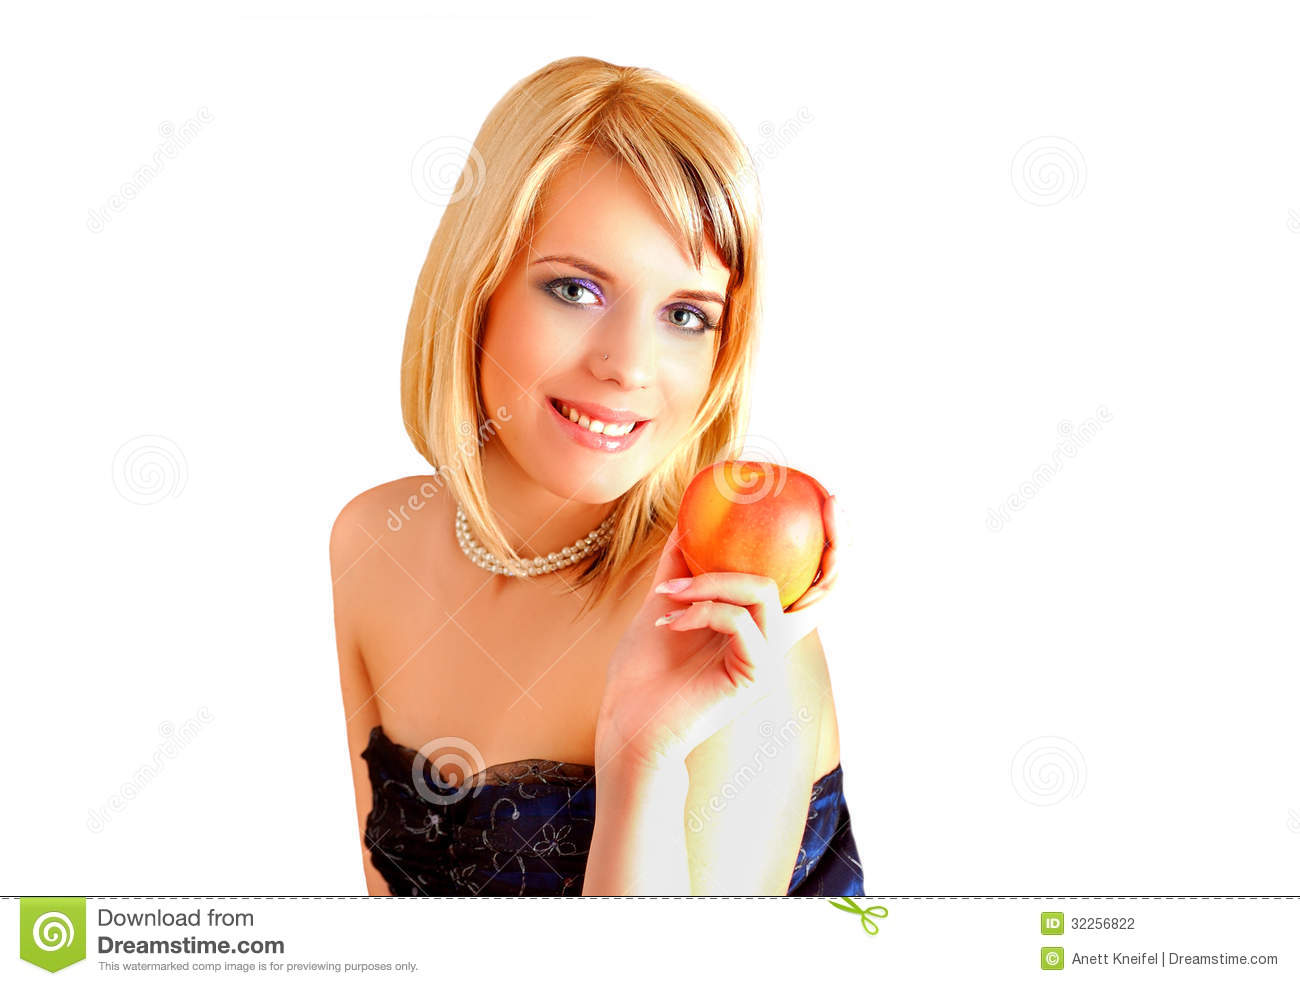 Eve And The Apple Stock Photography - Image: 32256822